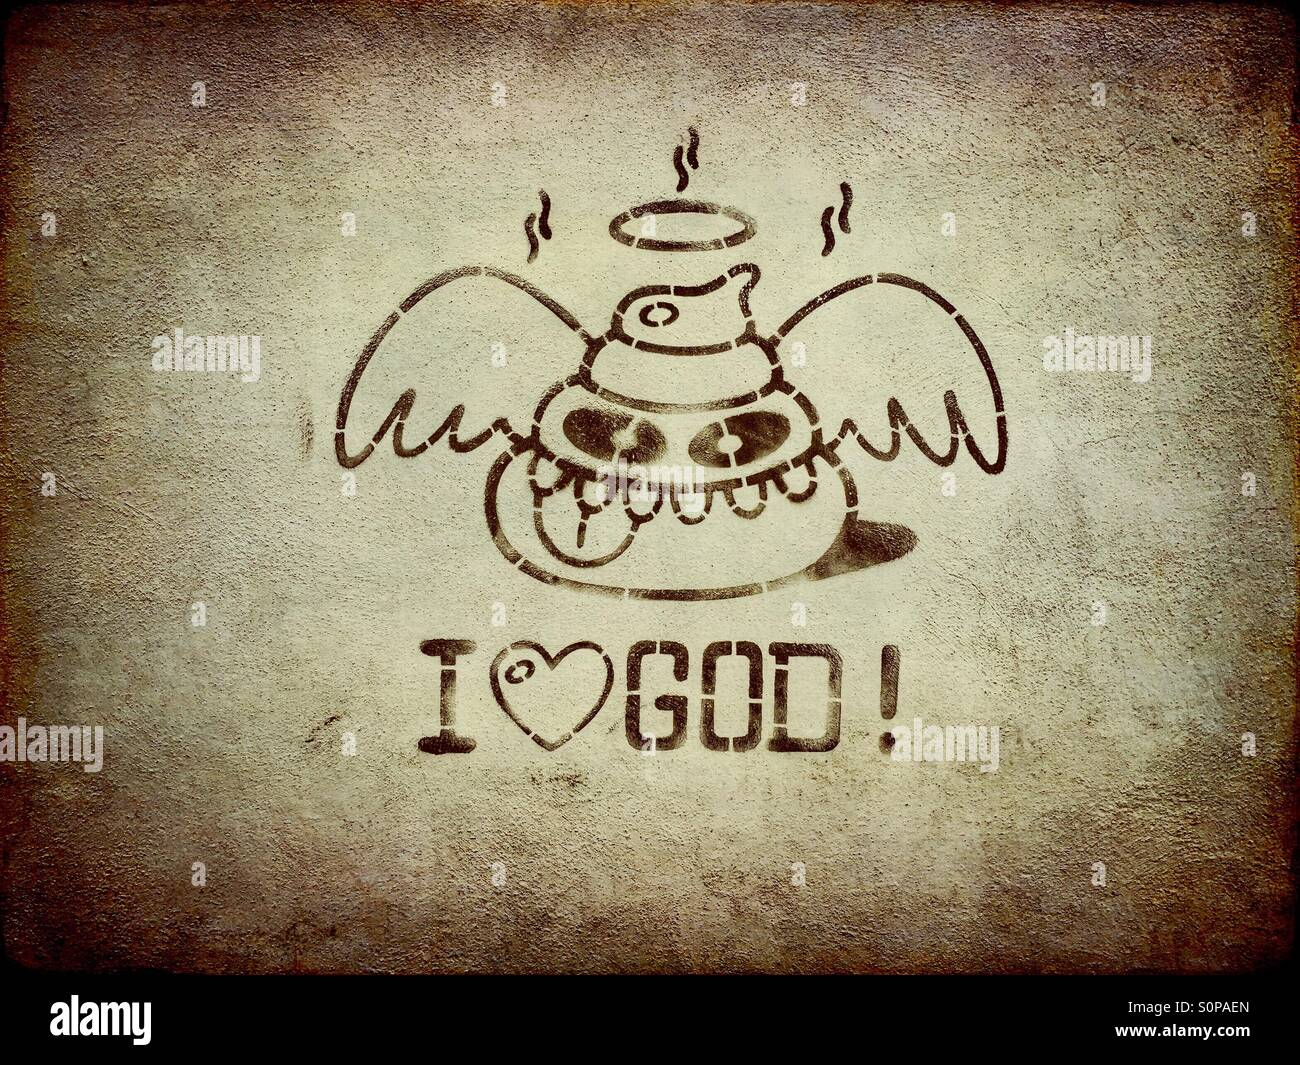 I love God graffiti Stock Photo, Royalty Free Image ...